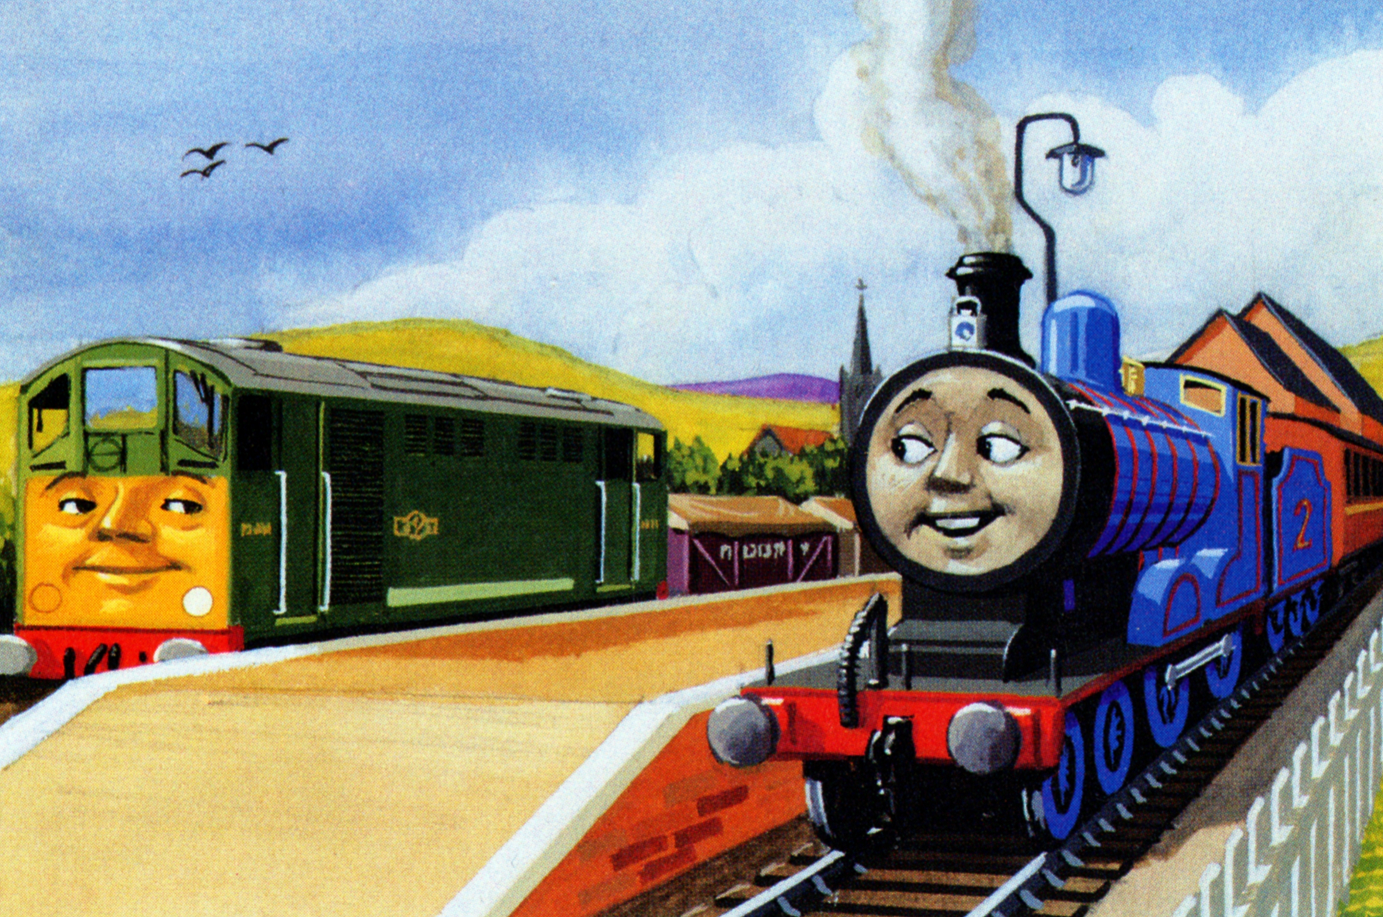 Image boco in trainz thomas and friends png scratchpad fandom - Image Boco In Trainz Thomas And Friends Png Scratchpad Fandom 0